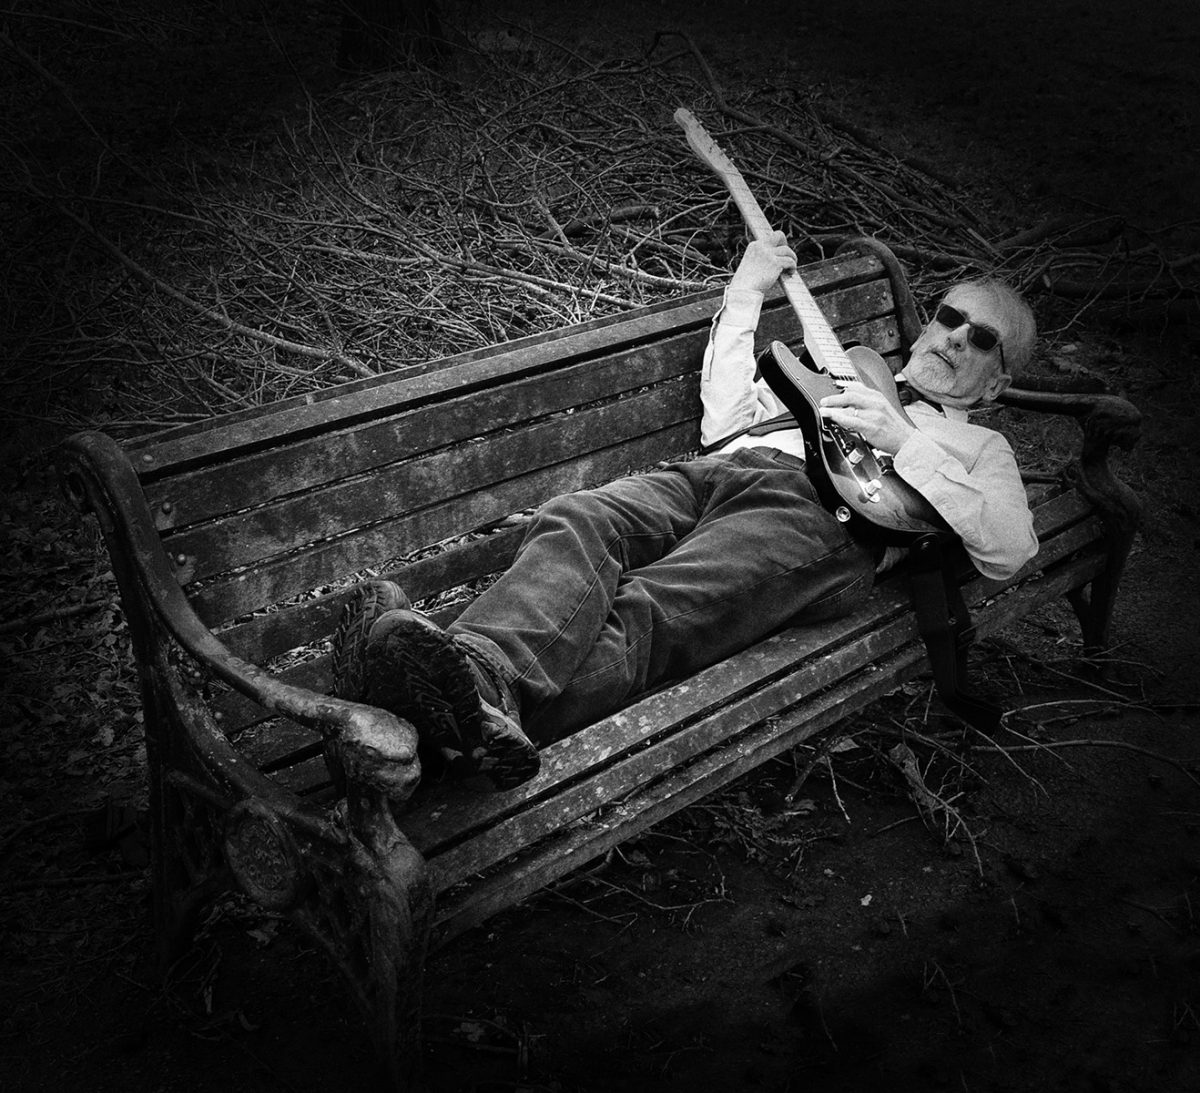 Photo of Mike lying on a park bench, Photograph taken by David White.